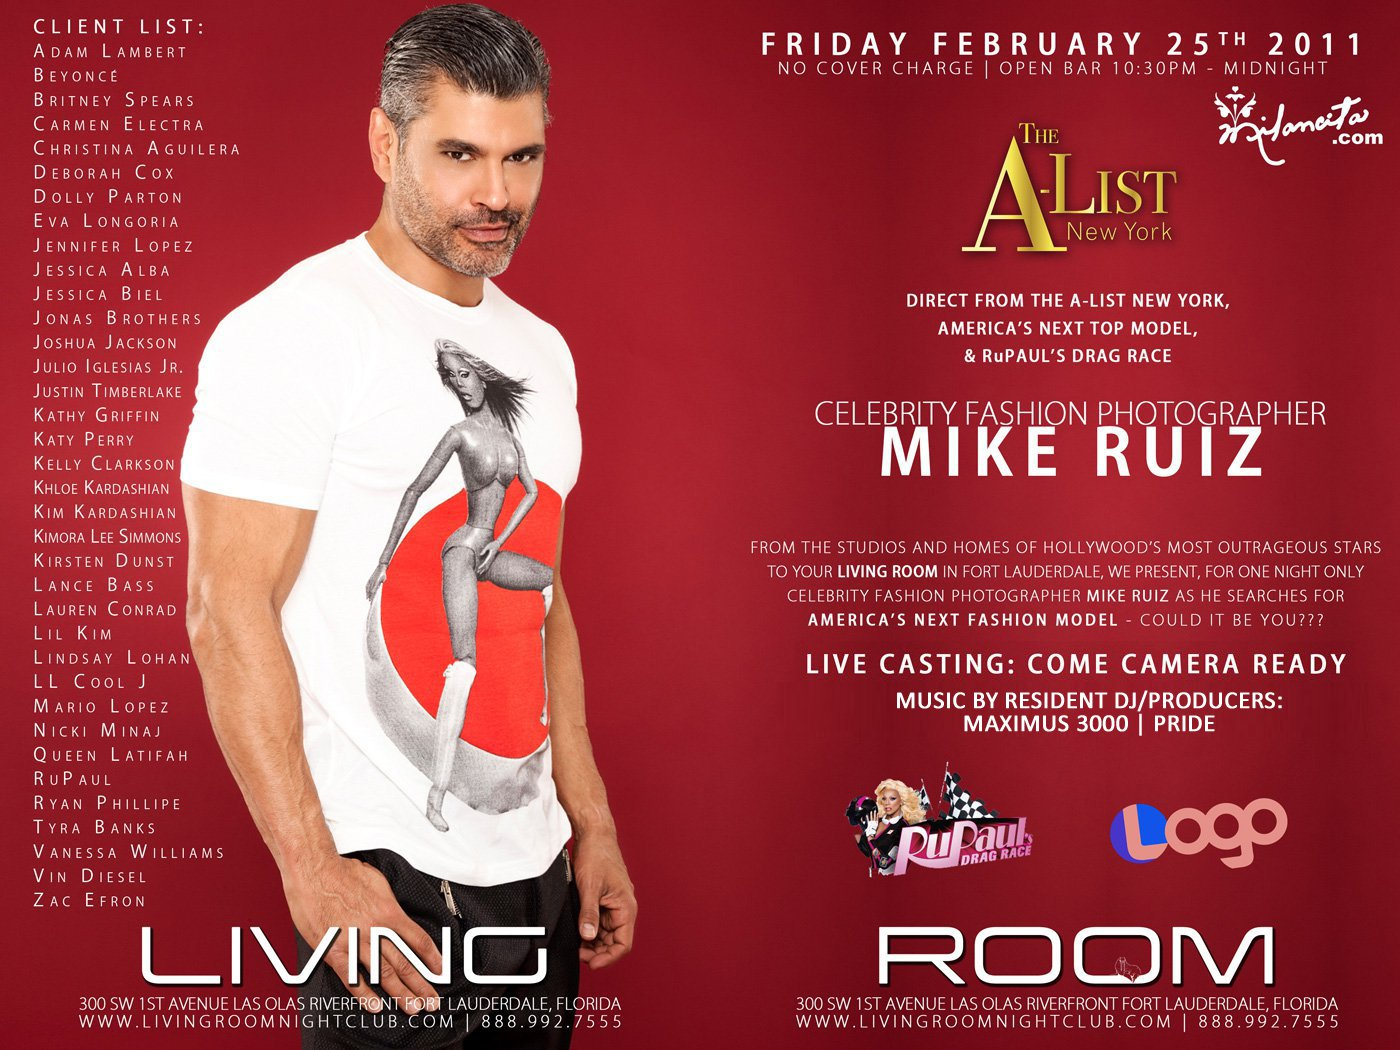 EVENTS: DJ/Producer Maximus 3000 U201cLiquid Fridays Presents Mike Ruizu201d A List  Celebrity Photographer @ Living Room Nightclub , Fort Lauderdale, FL  2 25 2011 Part 67